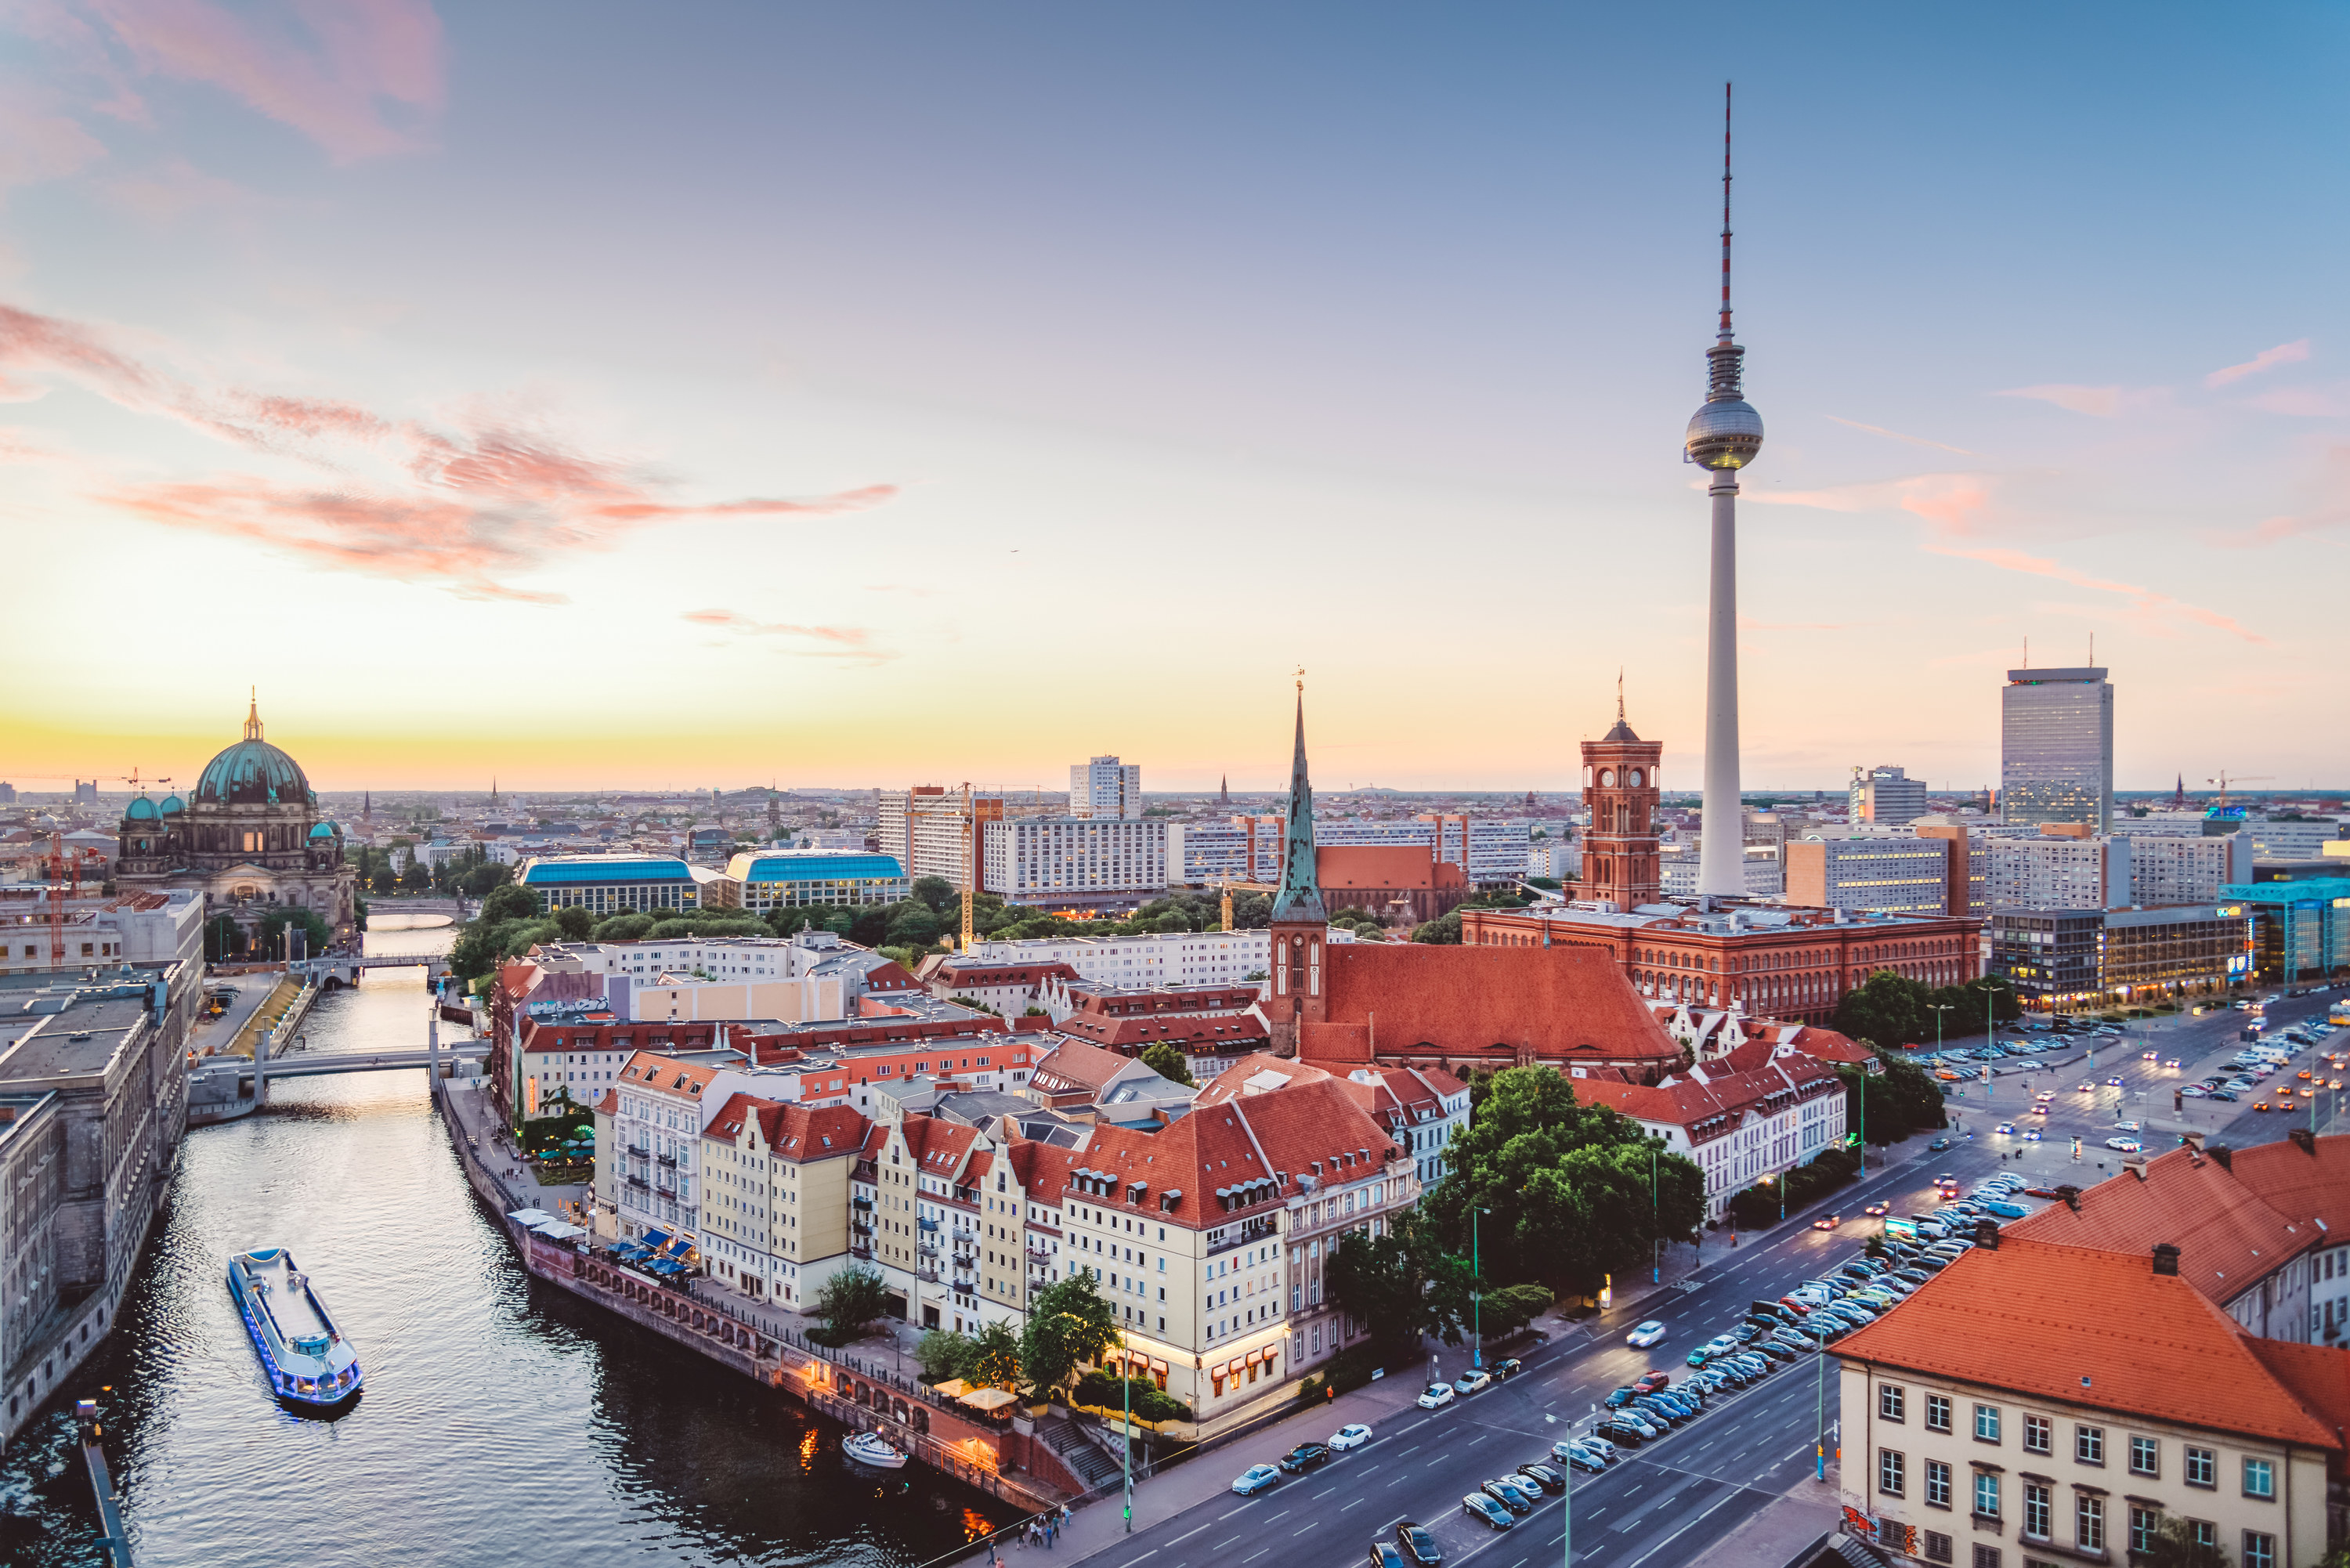 View of Berlin's TV tower, Berlin's main river, and other city landmarks with a sunset in the background